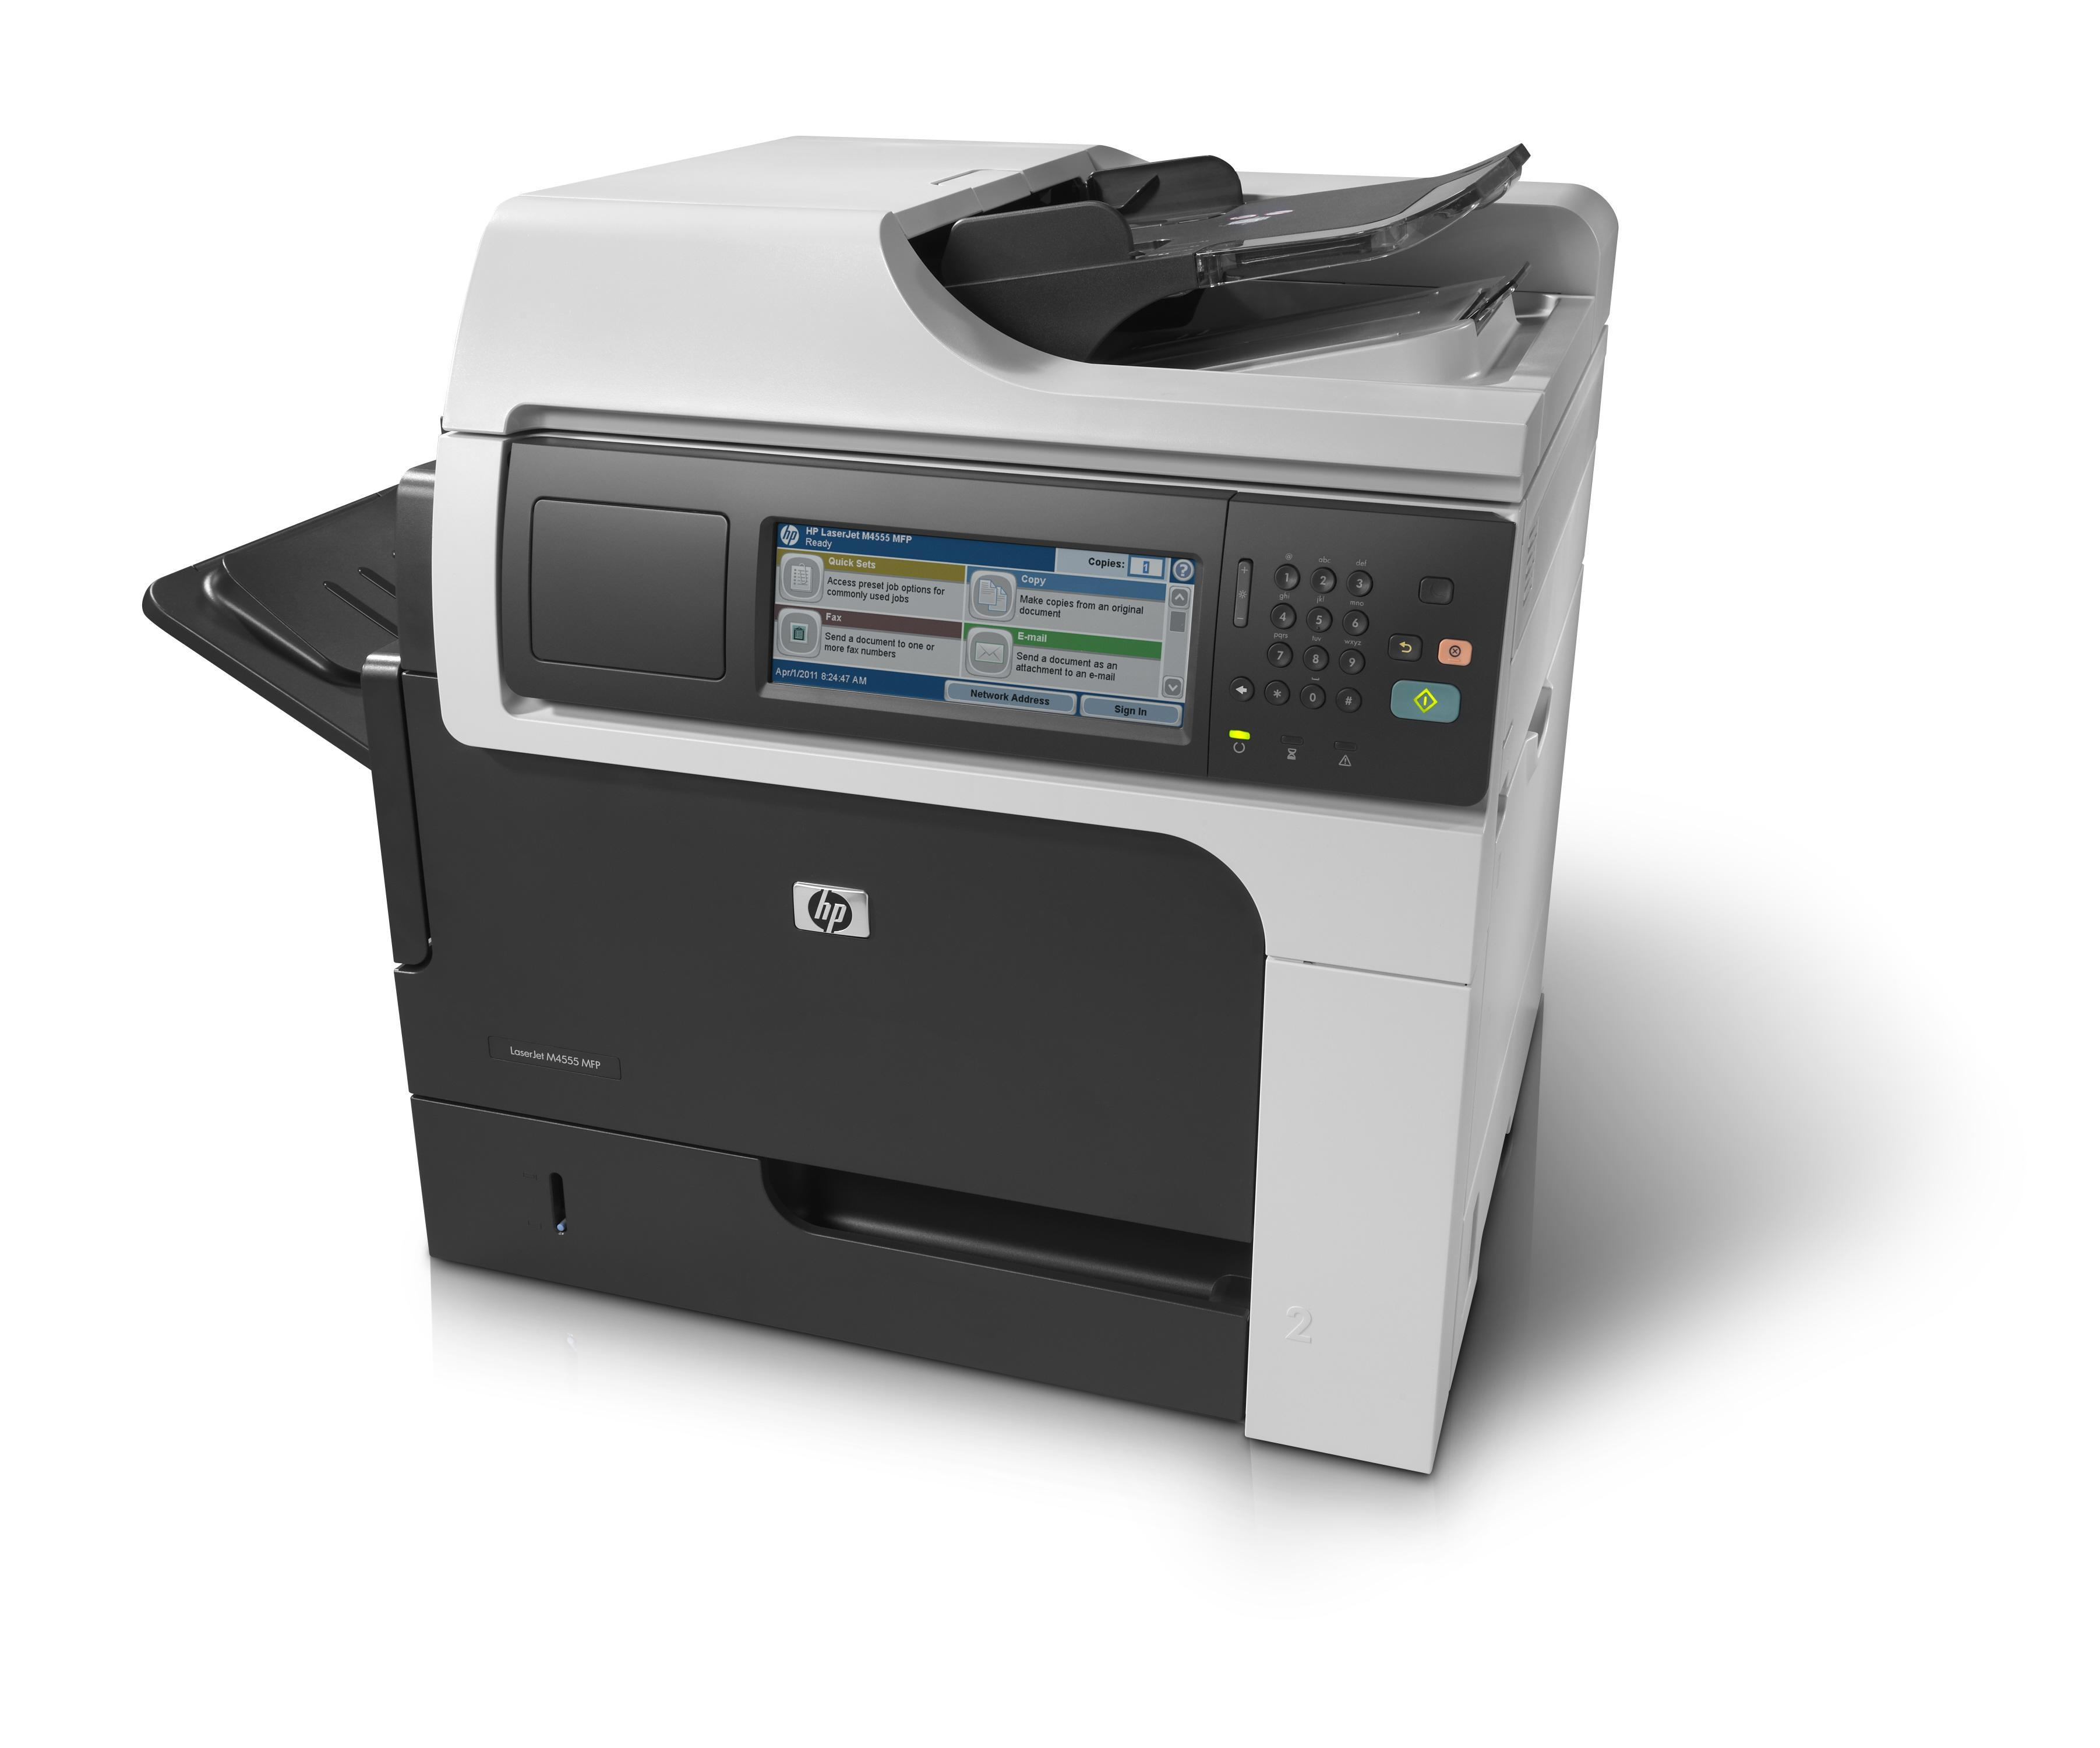 HP Laser Jet Enterprise M4555 MFP